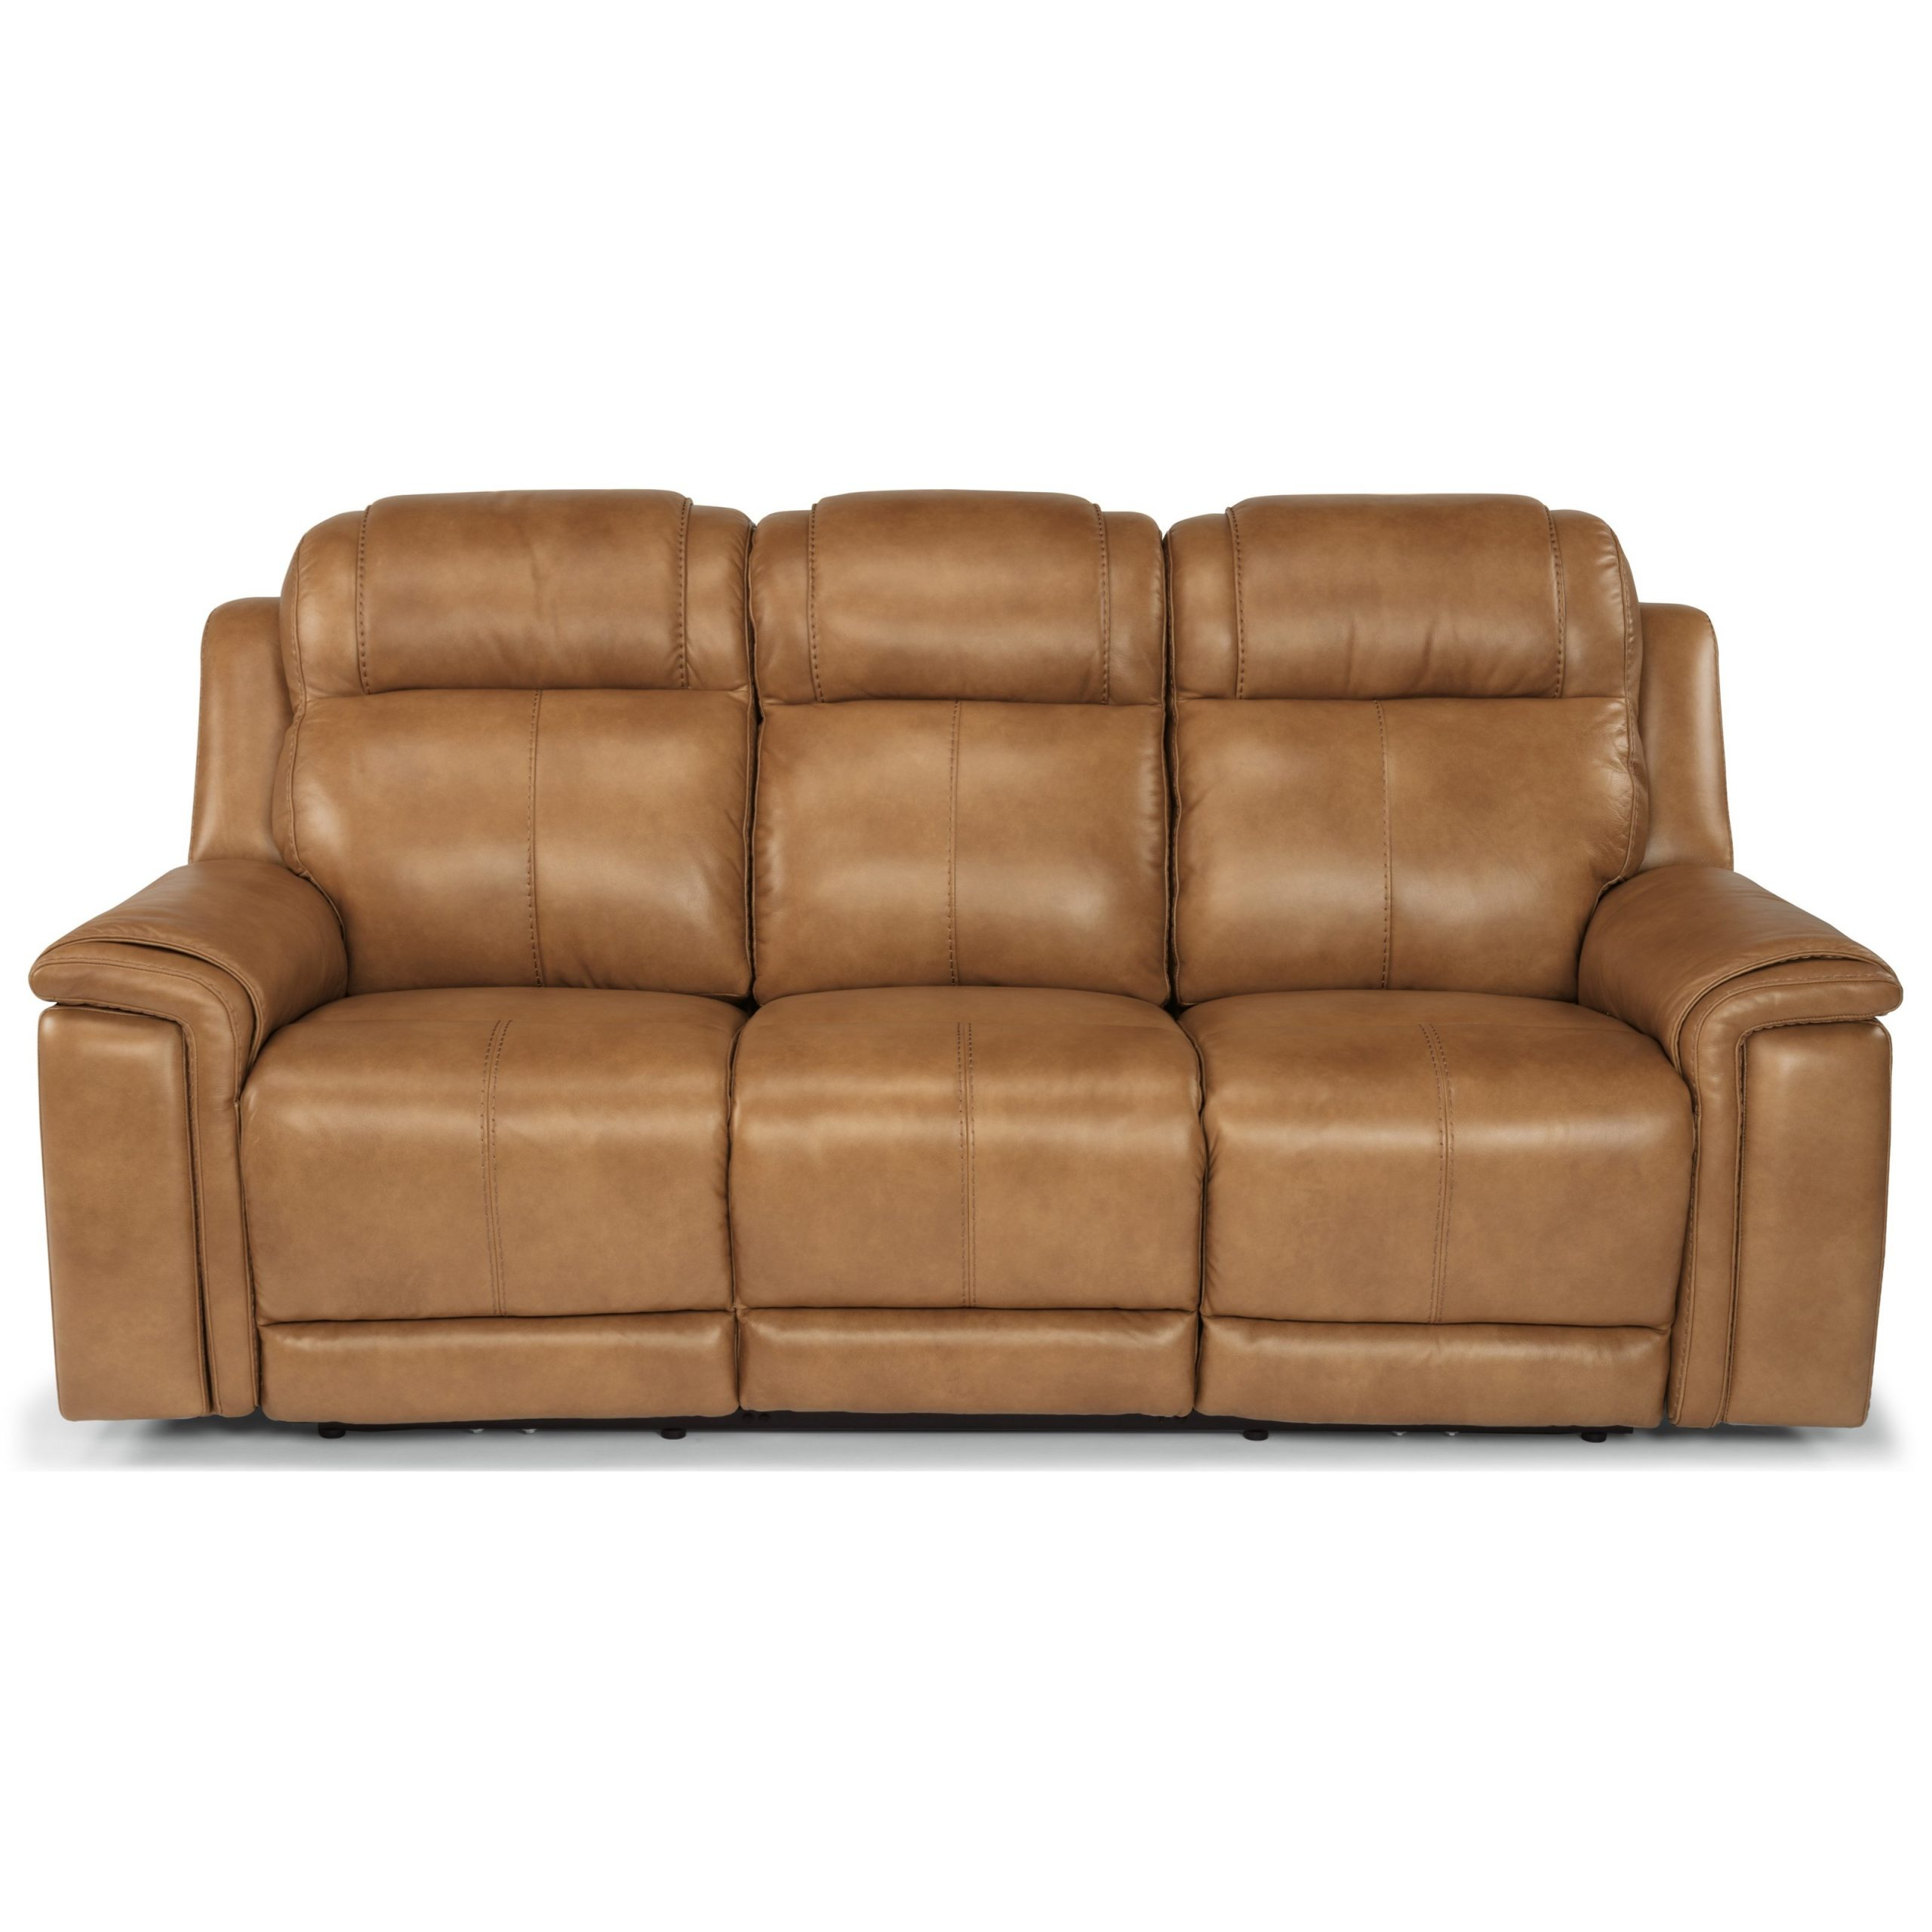 Most Popular Power Reclining Sofas With Regard To Flexsteel Latitudes – Kingsley Casual Lay Flat Power (View 2 of 15)